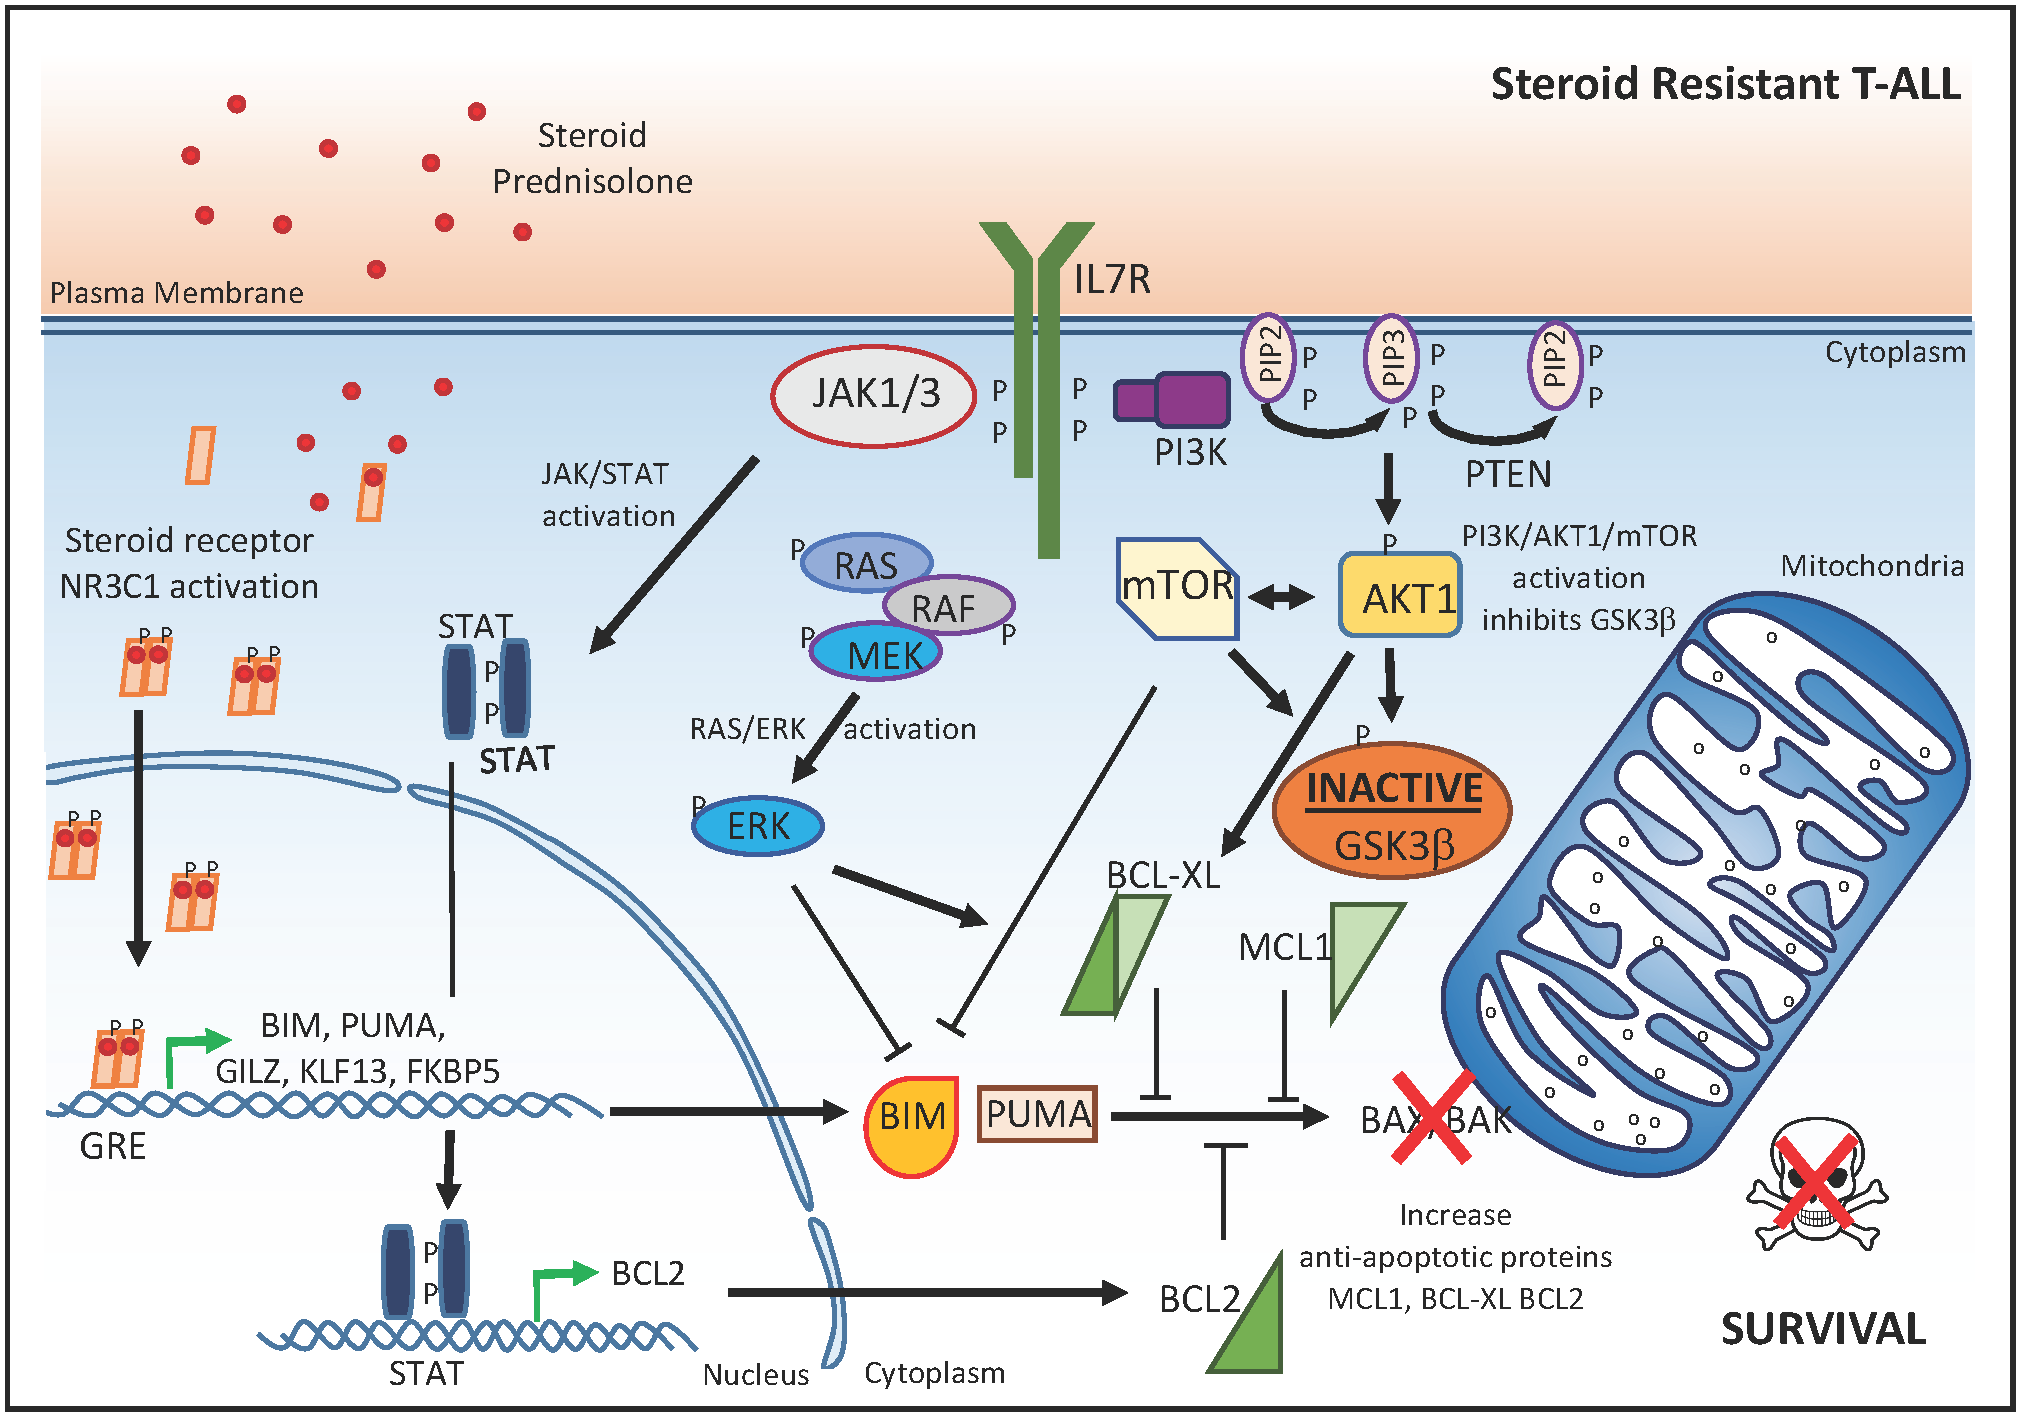 Molecular mechanisms that drive glucocorticoid resistance in T-ALL.